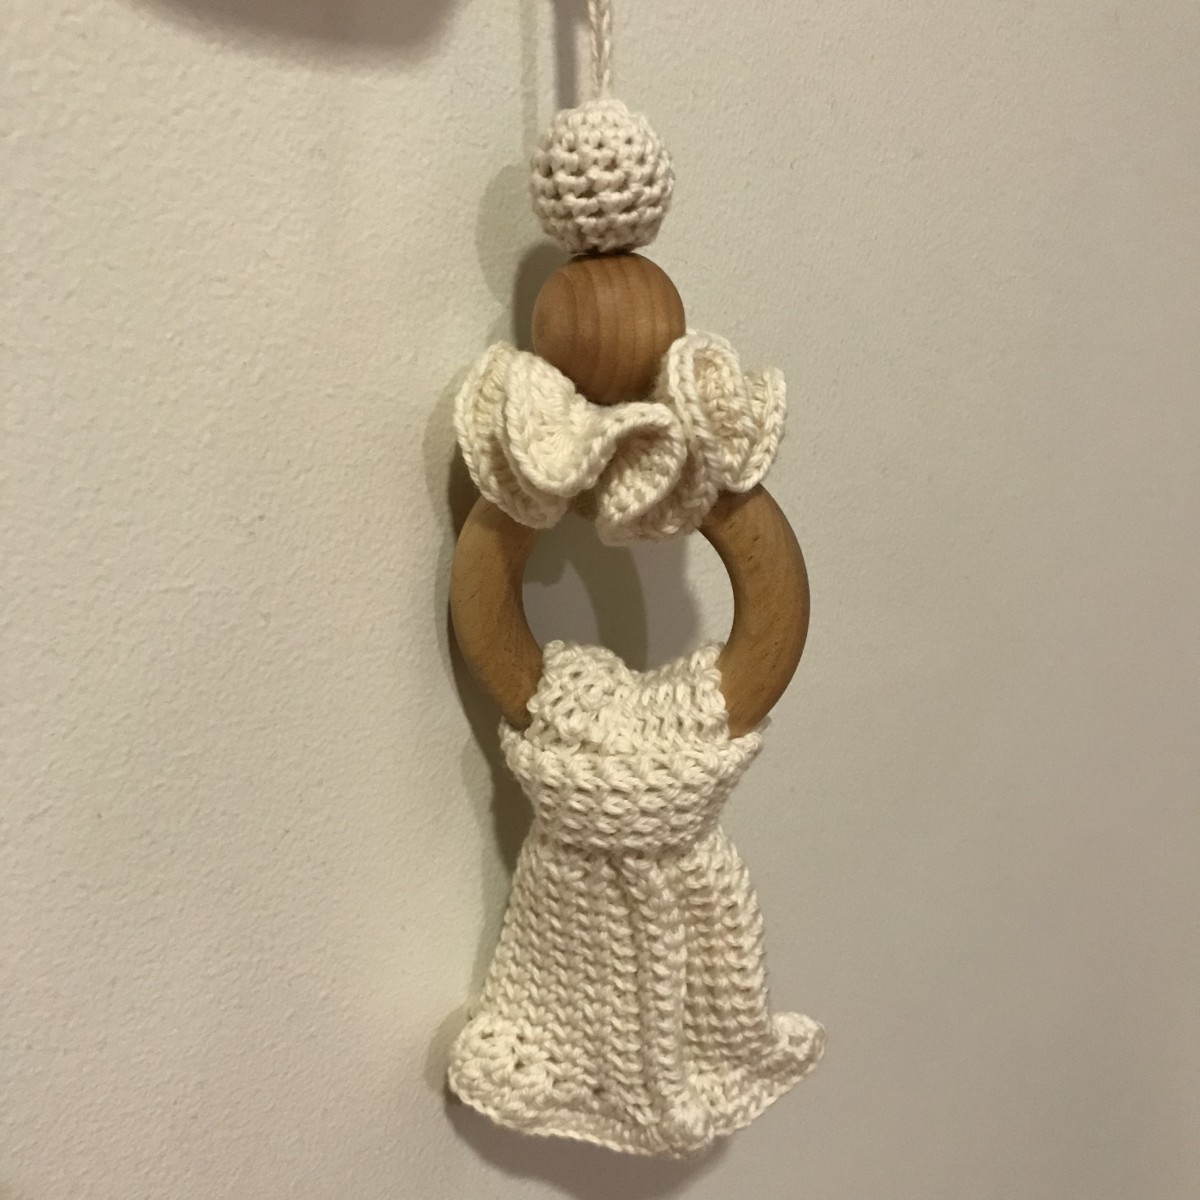 Wooden Teething Necklace Using Wooden Beads and Ruffles